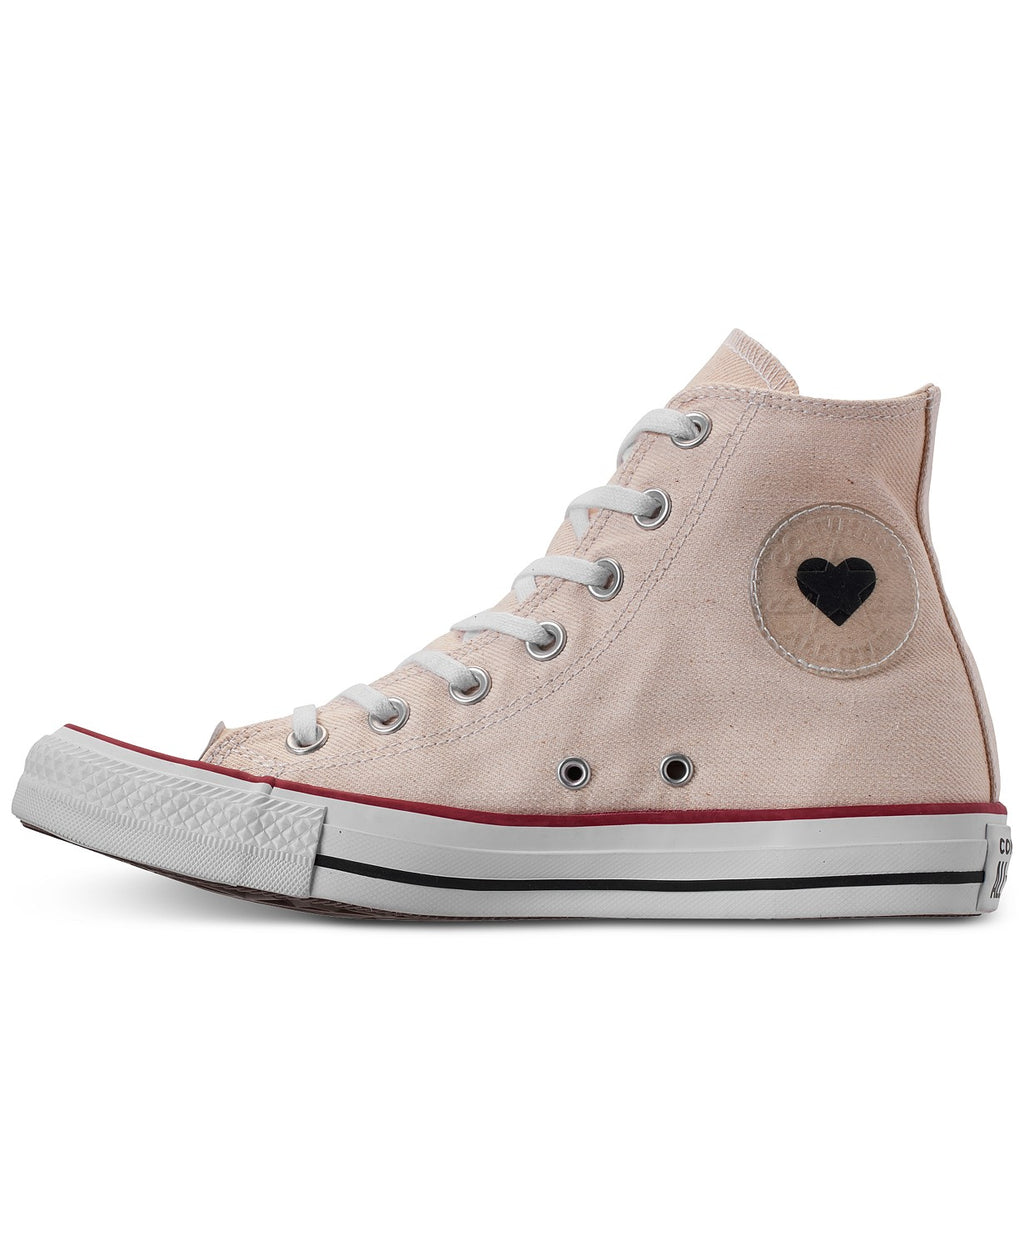 Converse Chuck Taylor heart High Top Sneakers